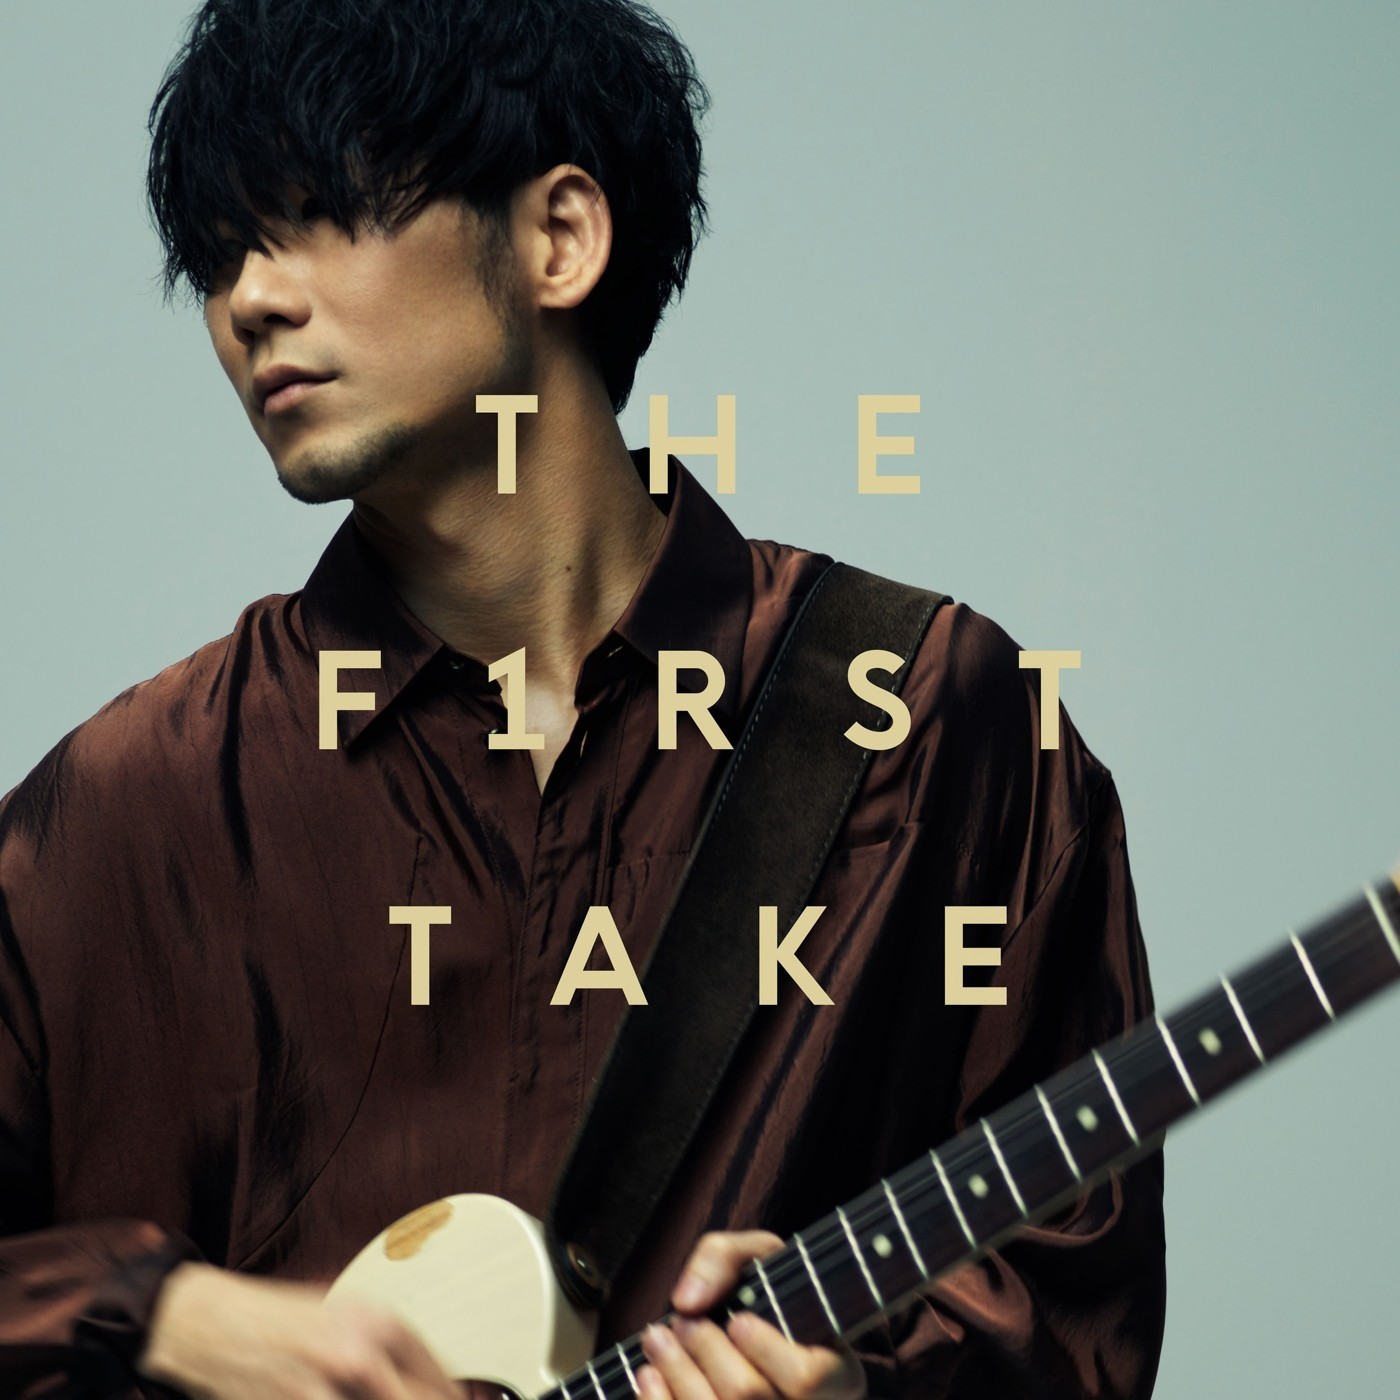 Download Single TK from Ling tosite sigure (凛として時雨) copy light From THE FIRST TAKE Flac